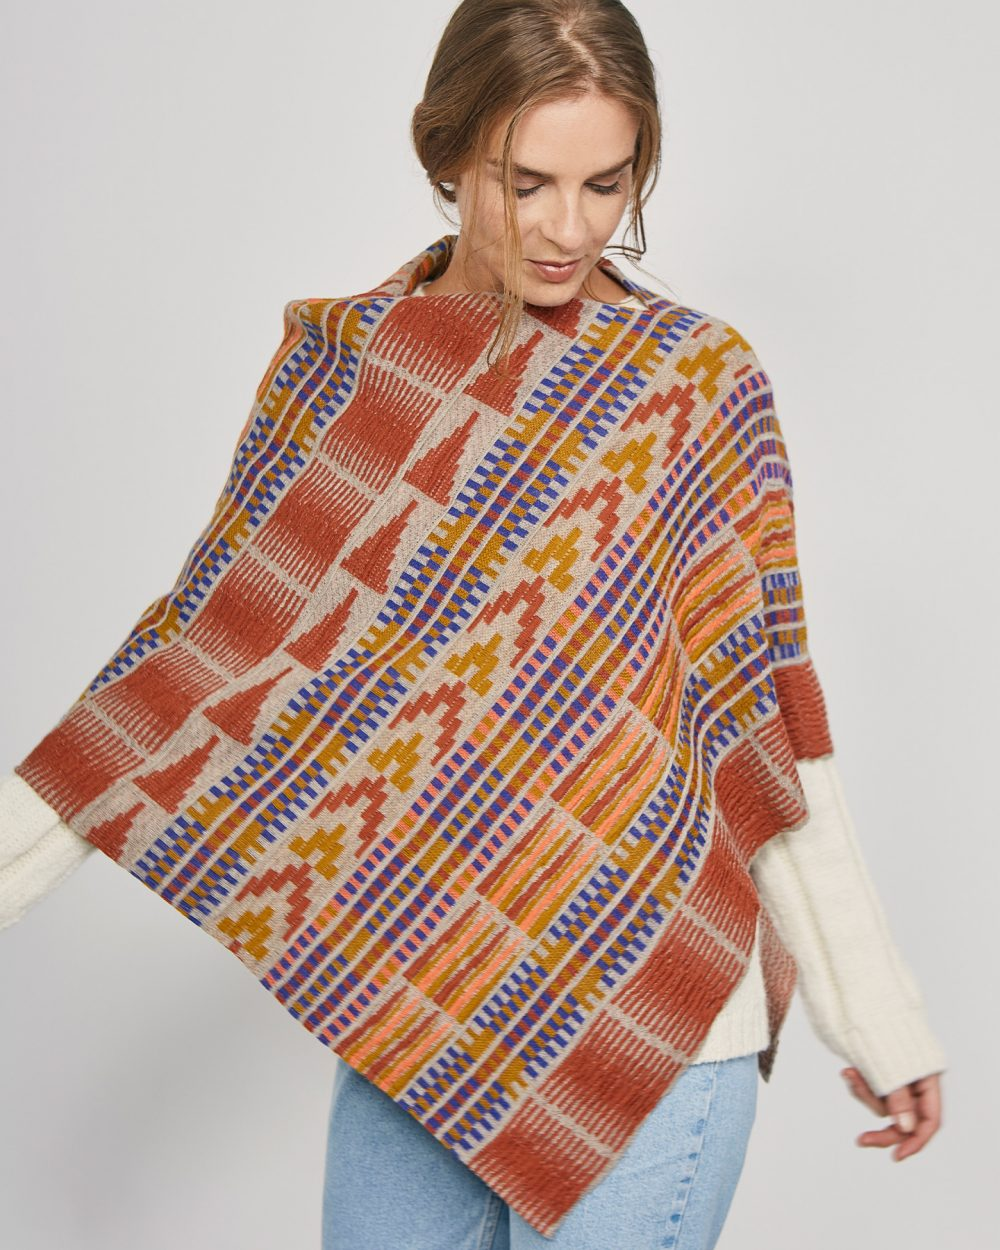 Poncho Elevation